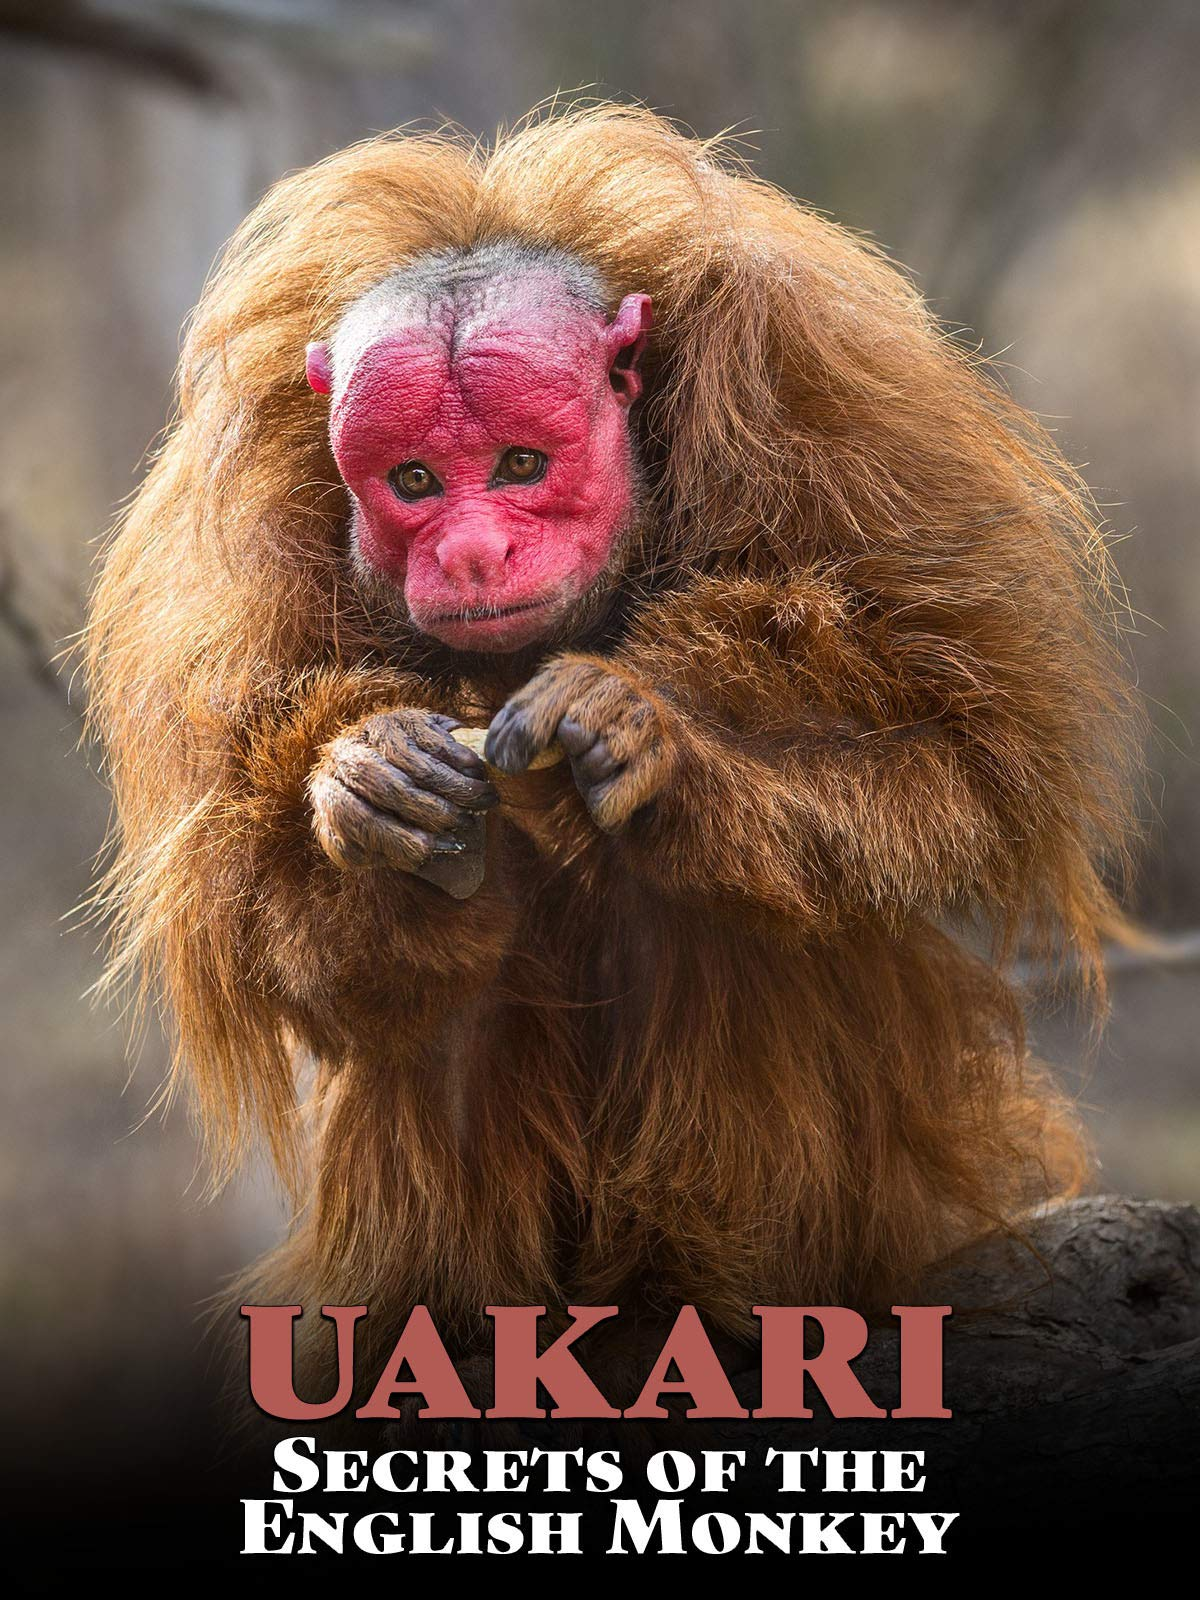 Uakari: Secrets of the English Monkey